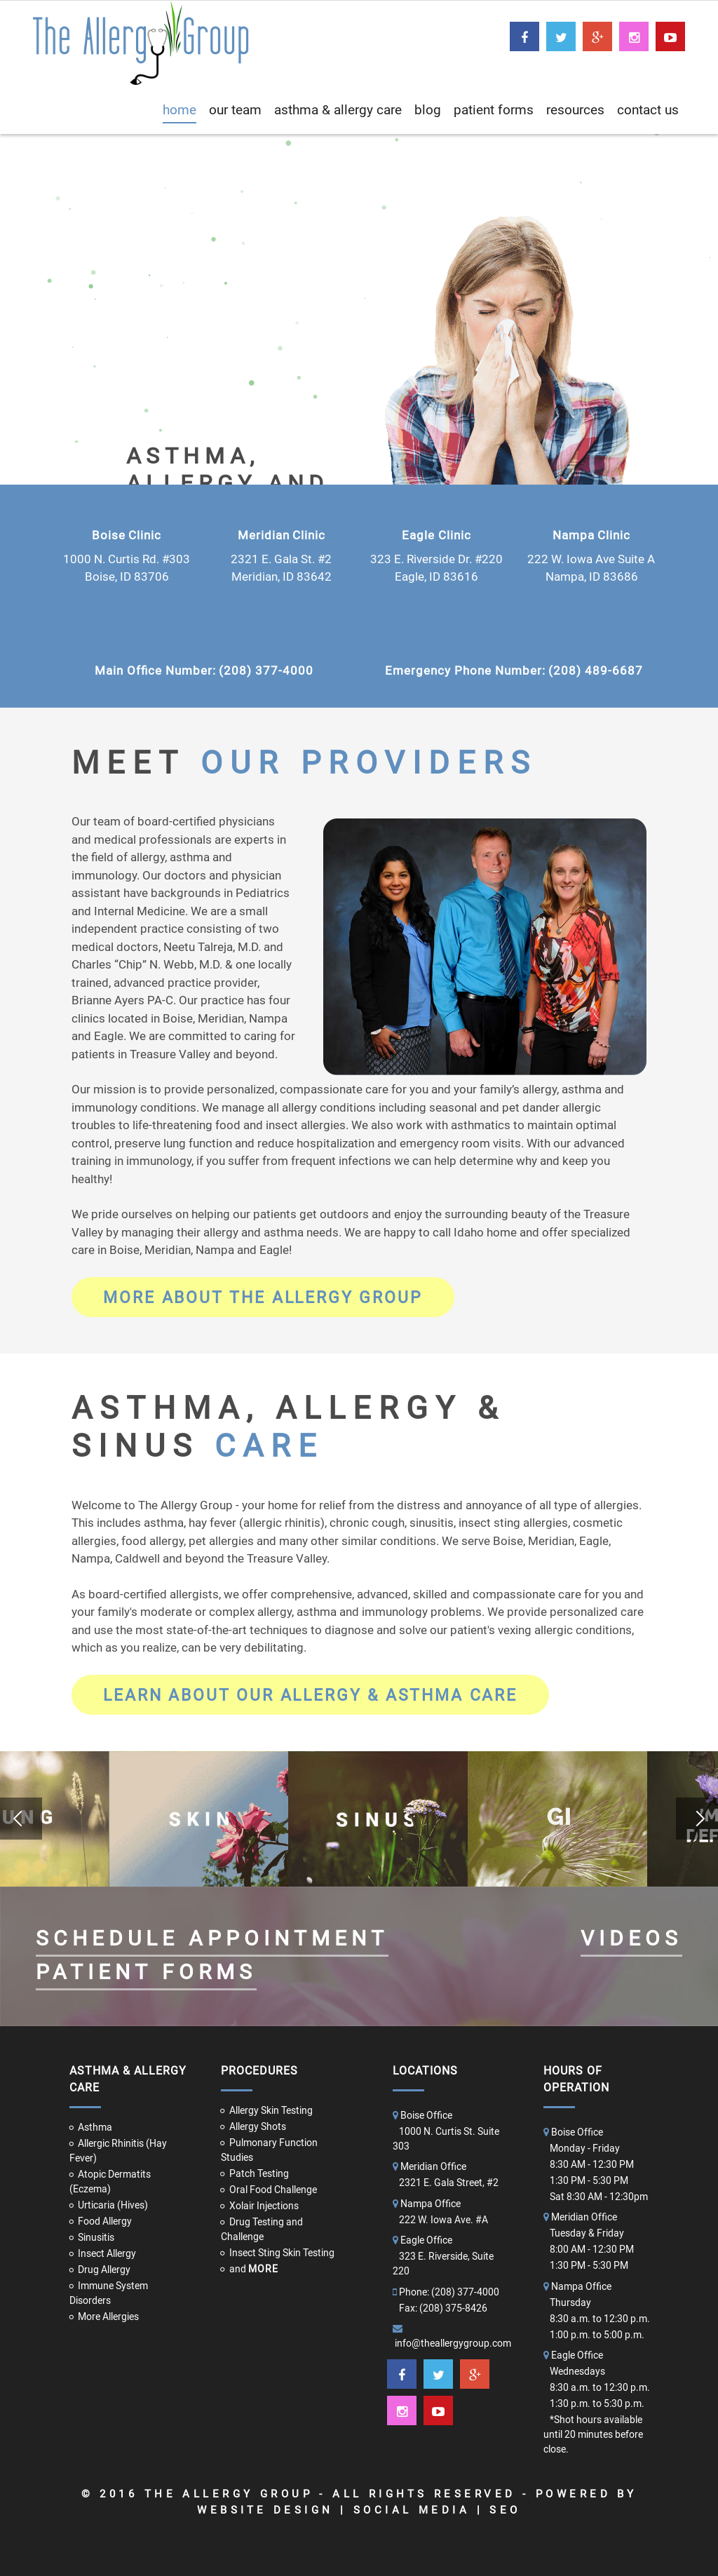 Chiropractor For Asthma